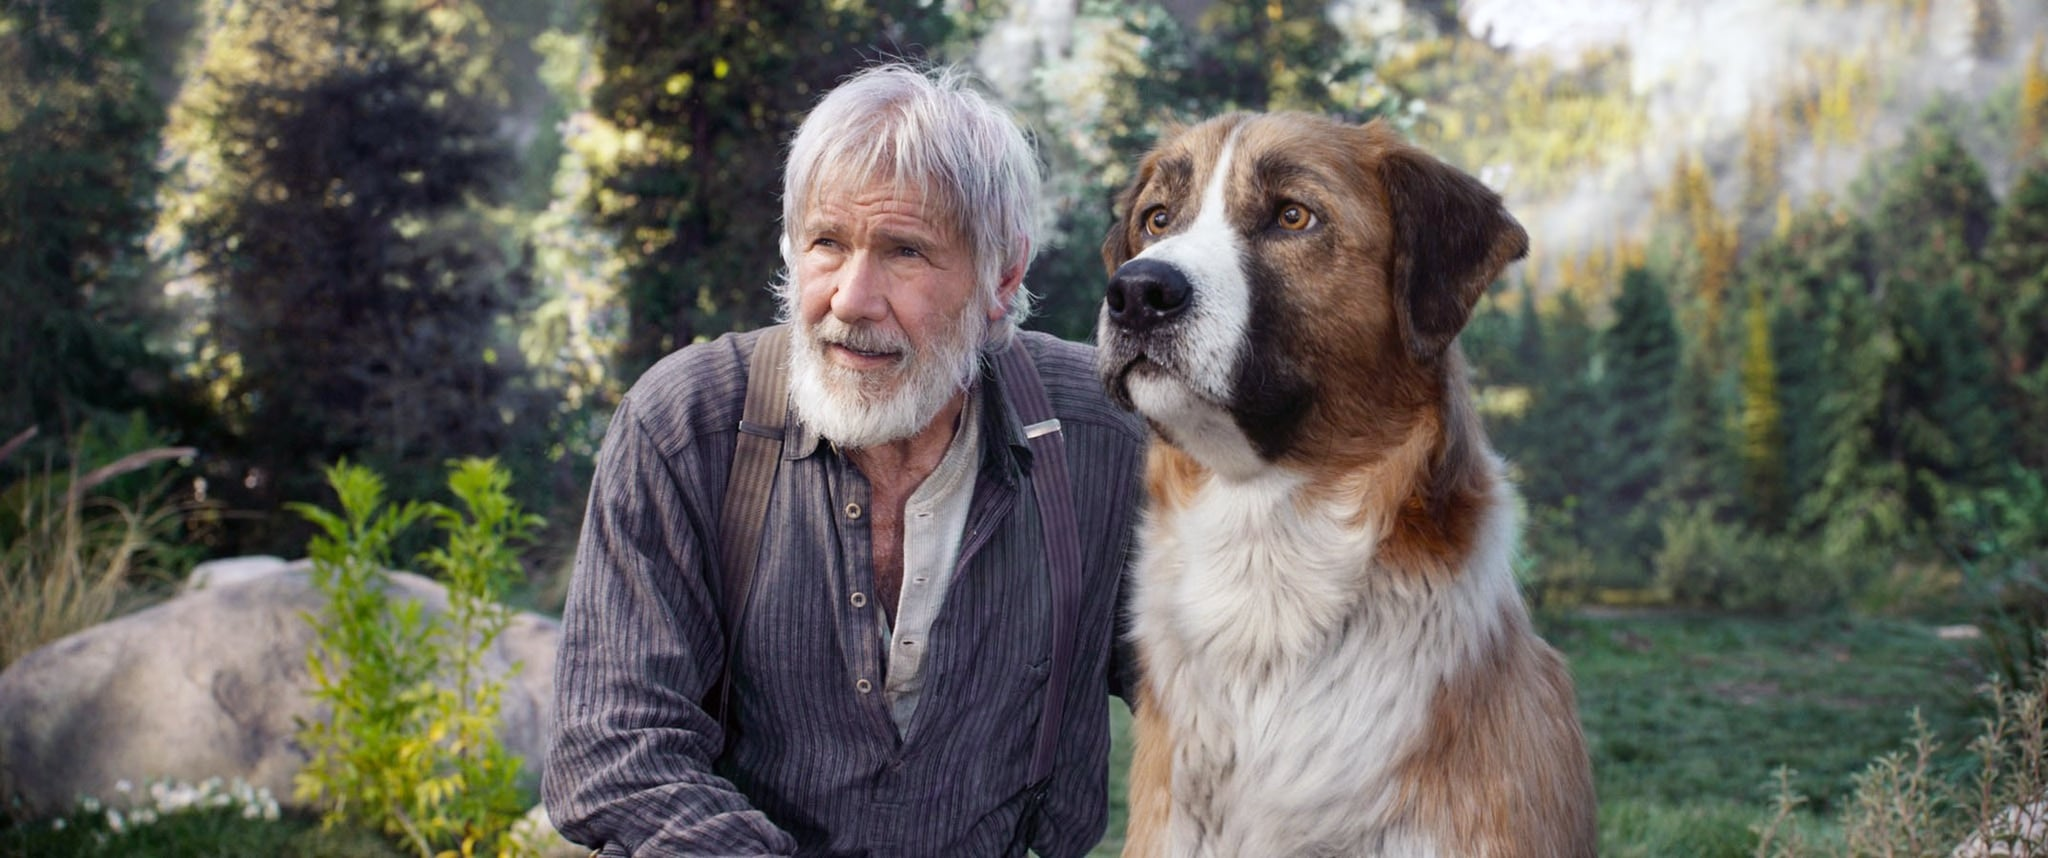 THE CALL OF THE WILD, Harrison Ford, 2020.  20th Century Studios / courtesy Everett Collection